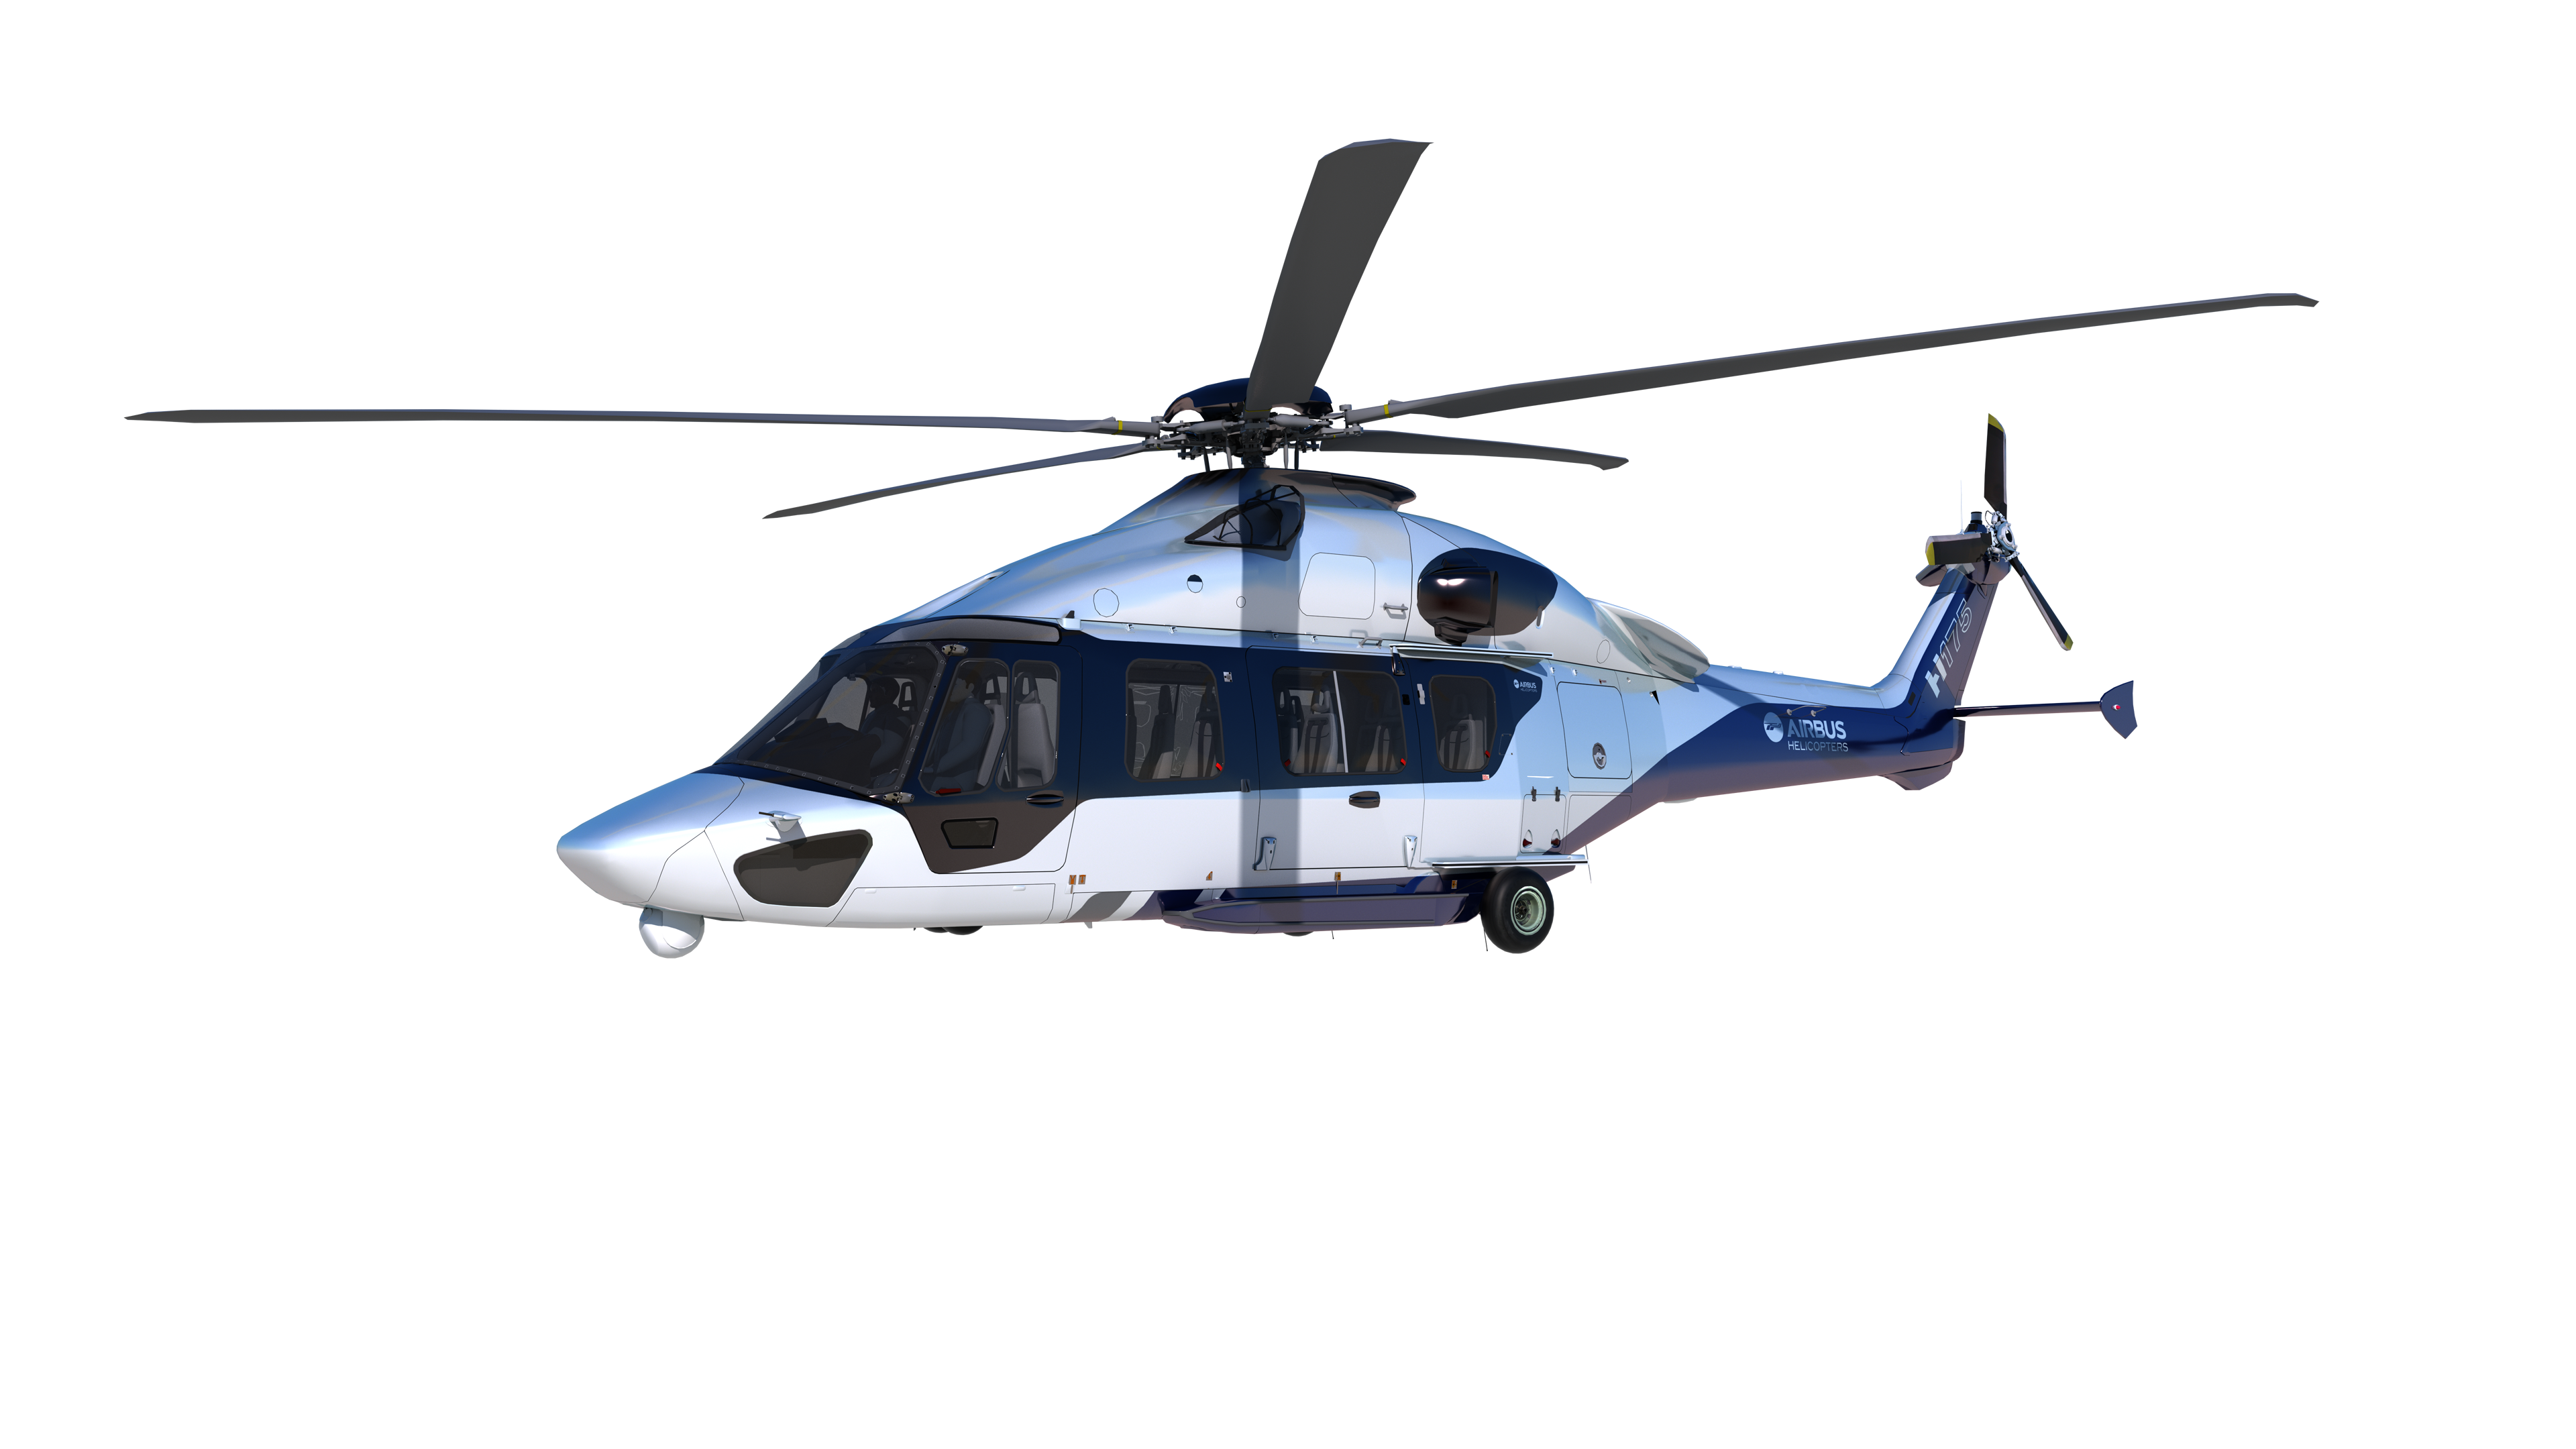 Transparent png pictures free. Helicopter clipart flying machine